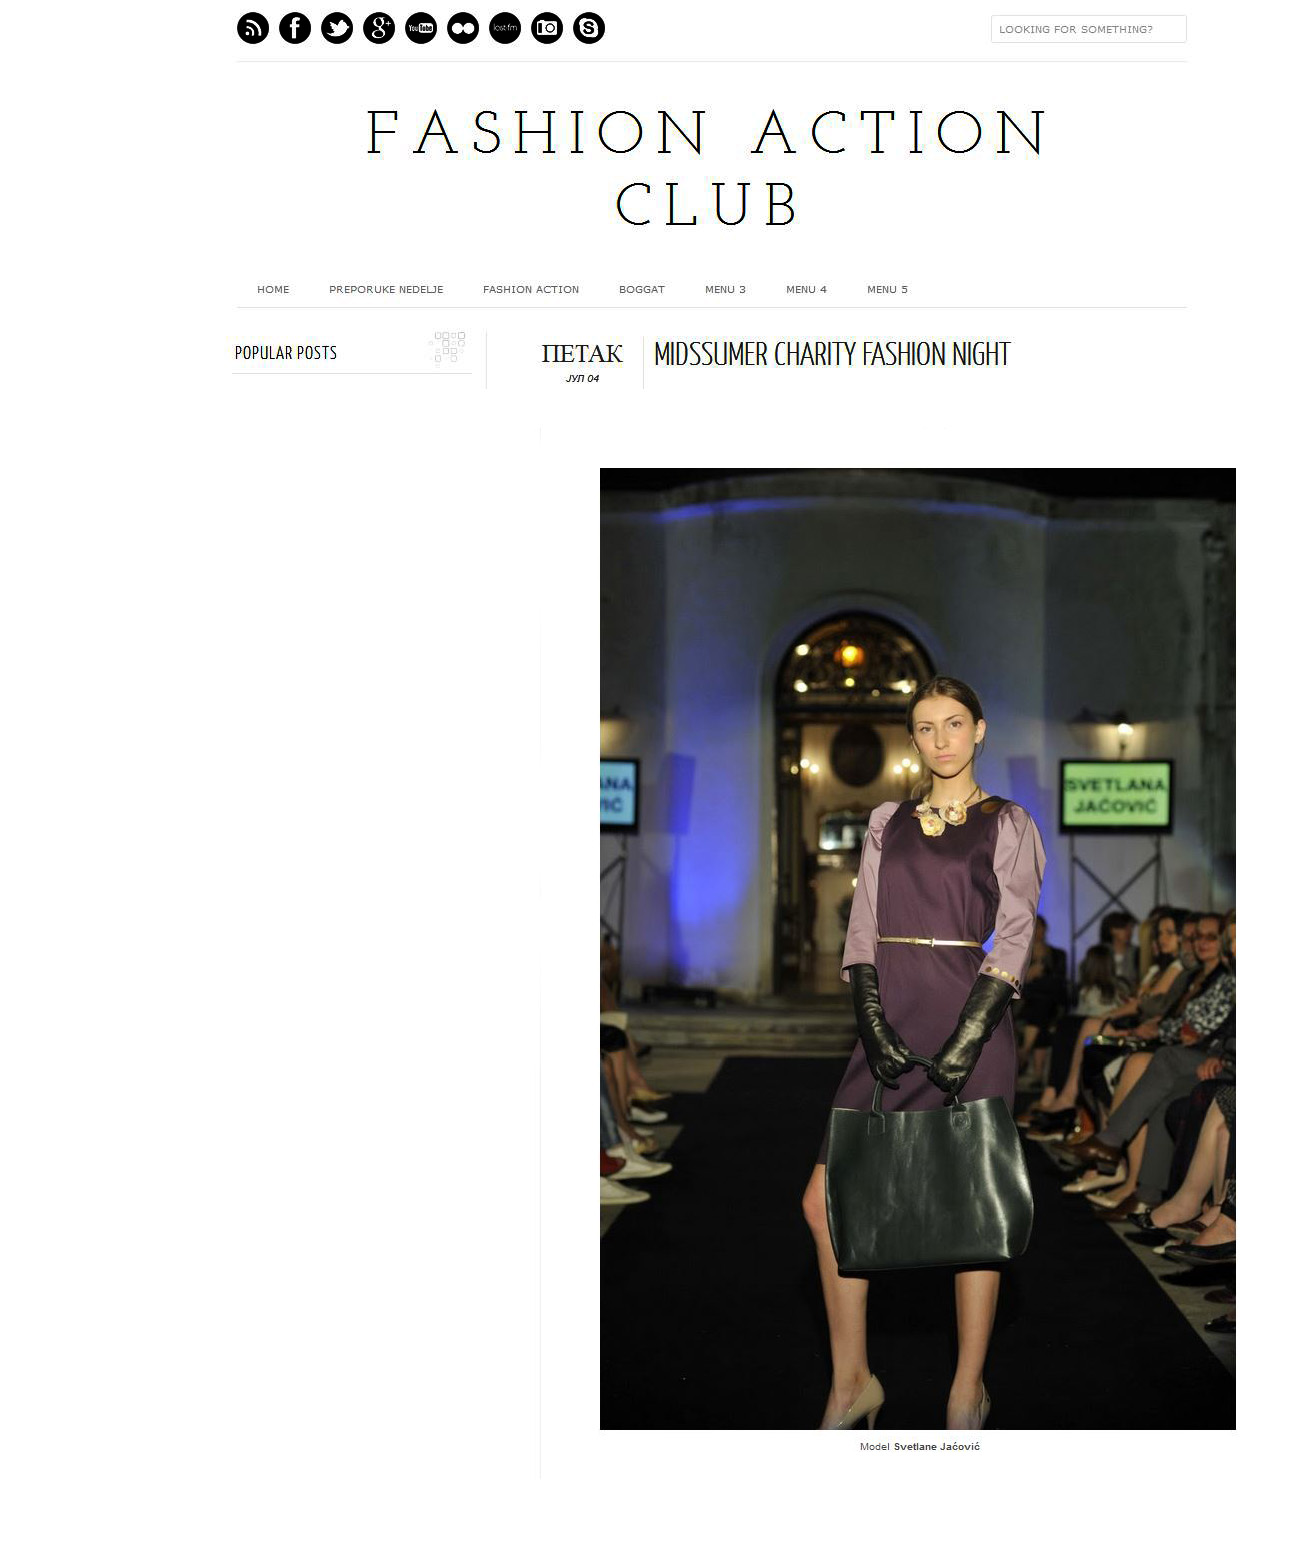 Fashionaction-club, July 2014